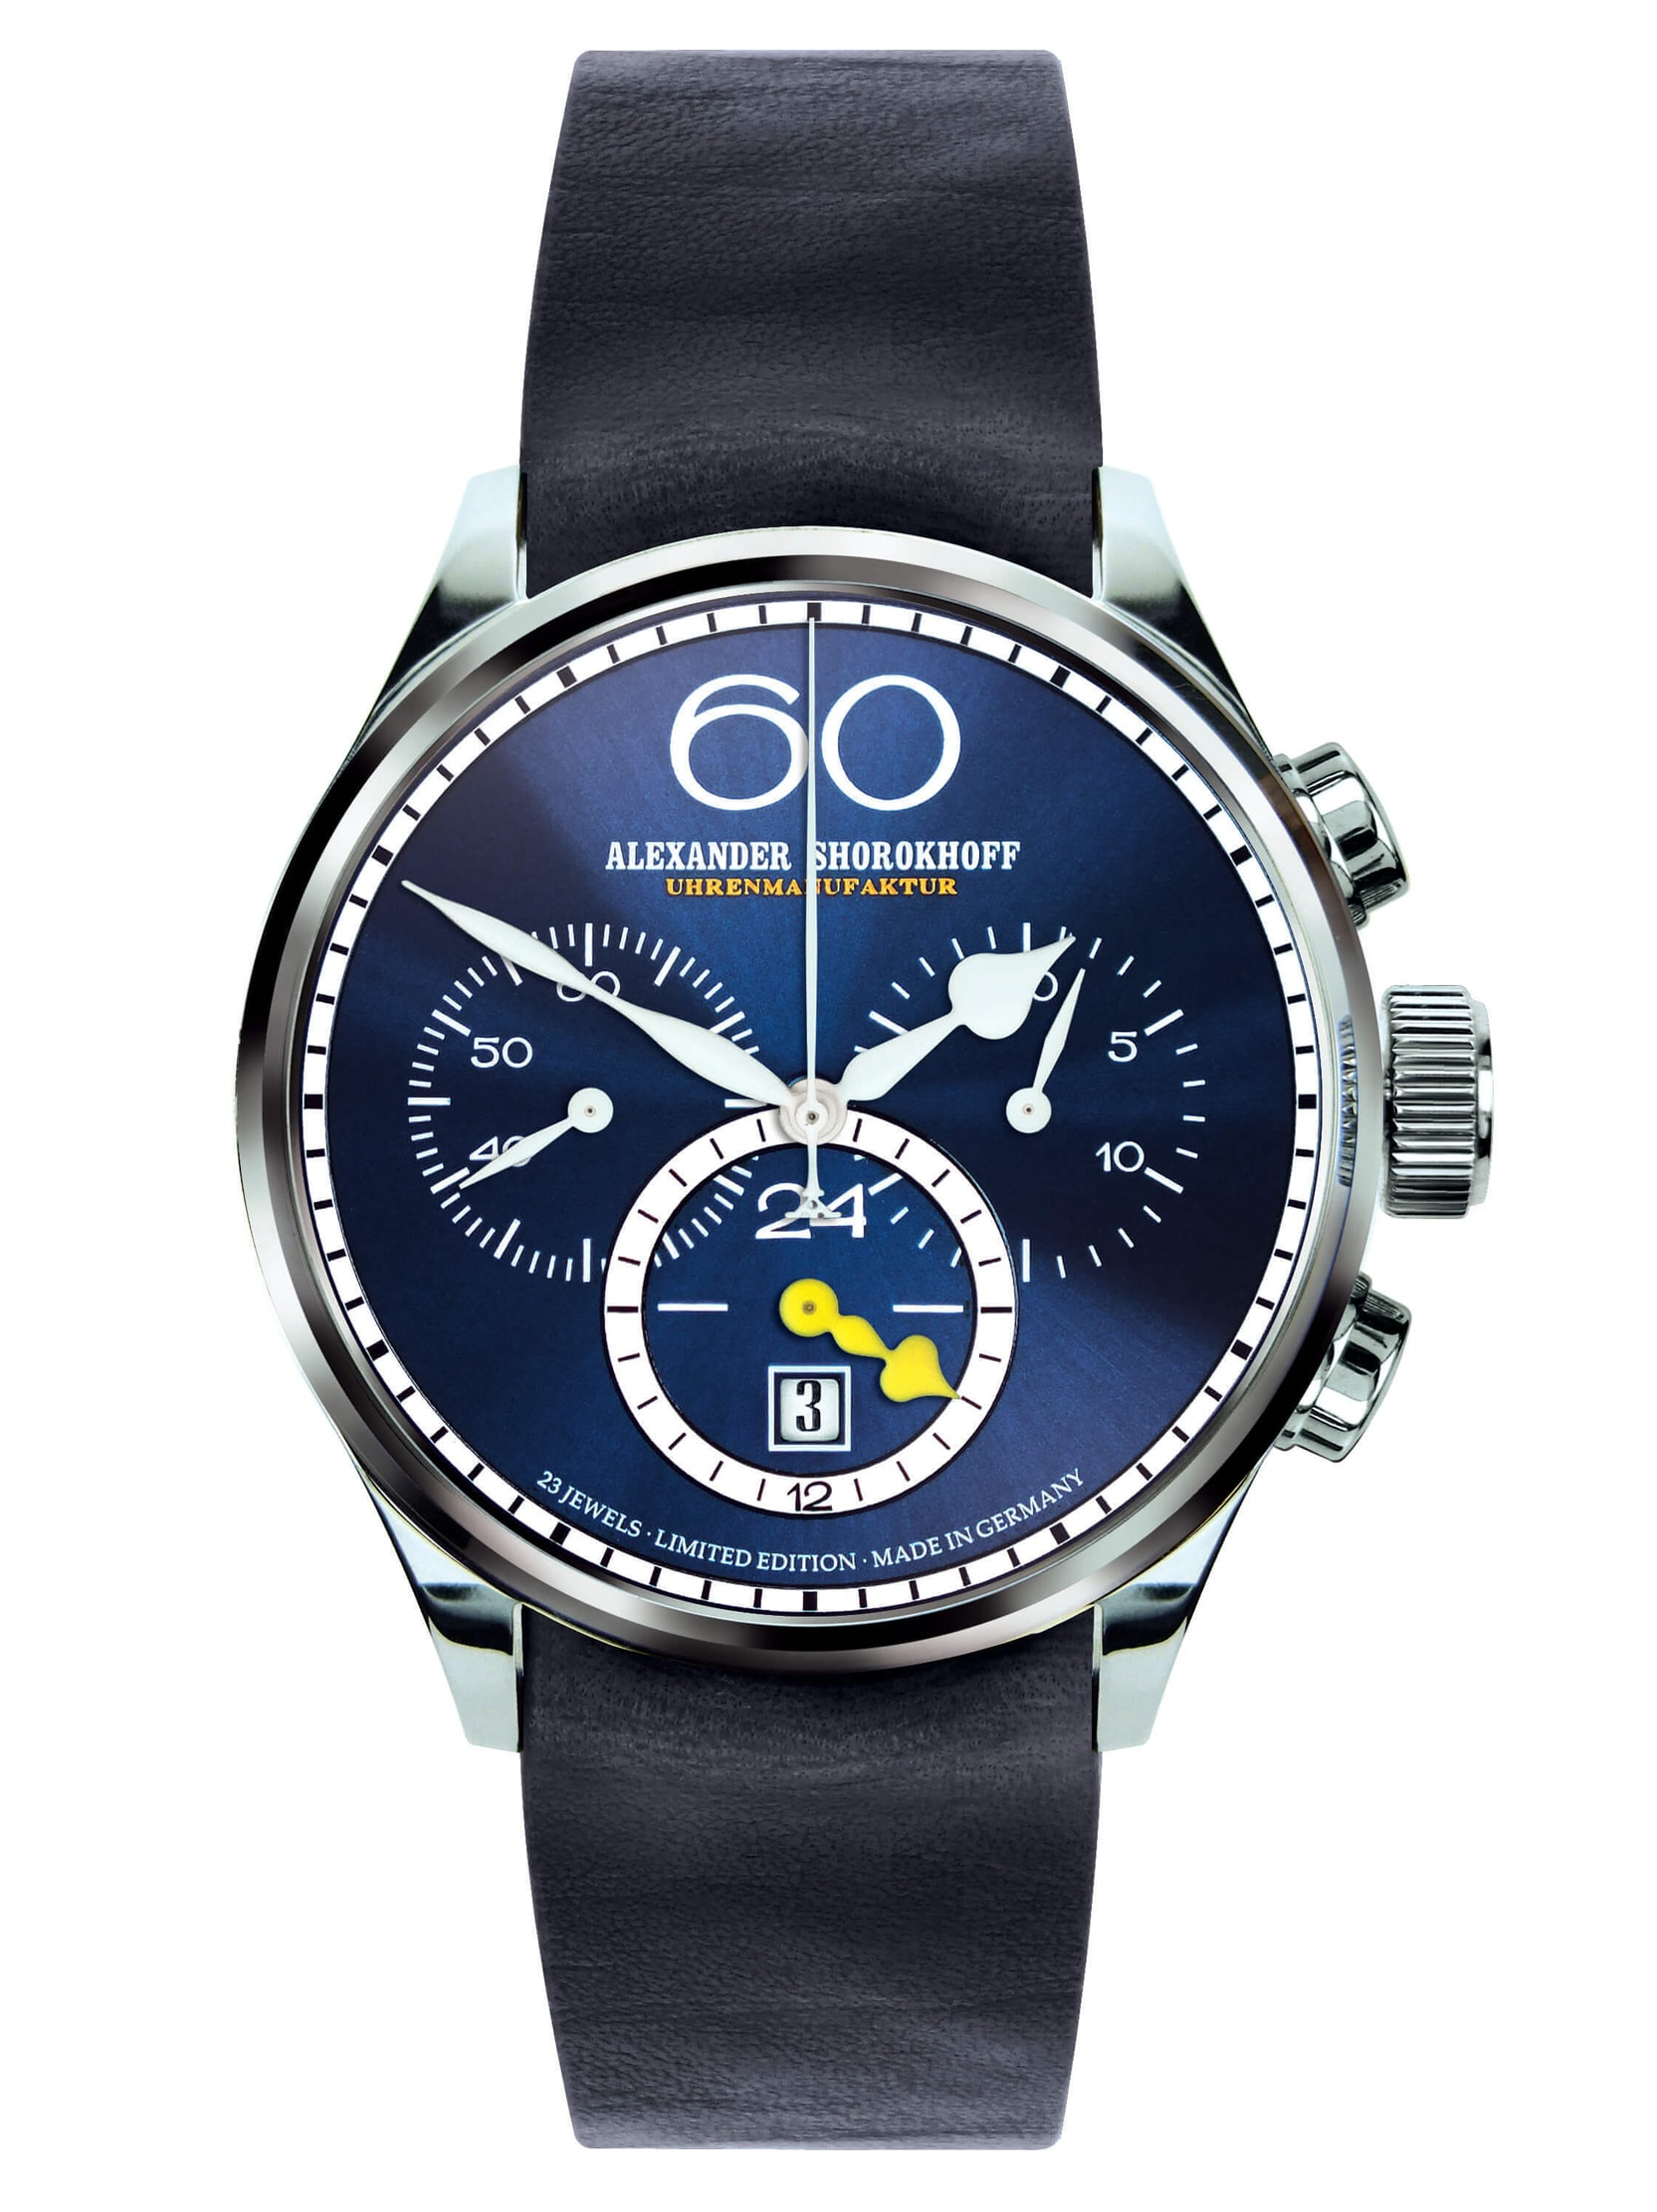 VINTAGE 2 - Twenty four Chrono - night-blue